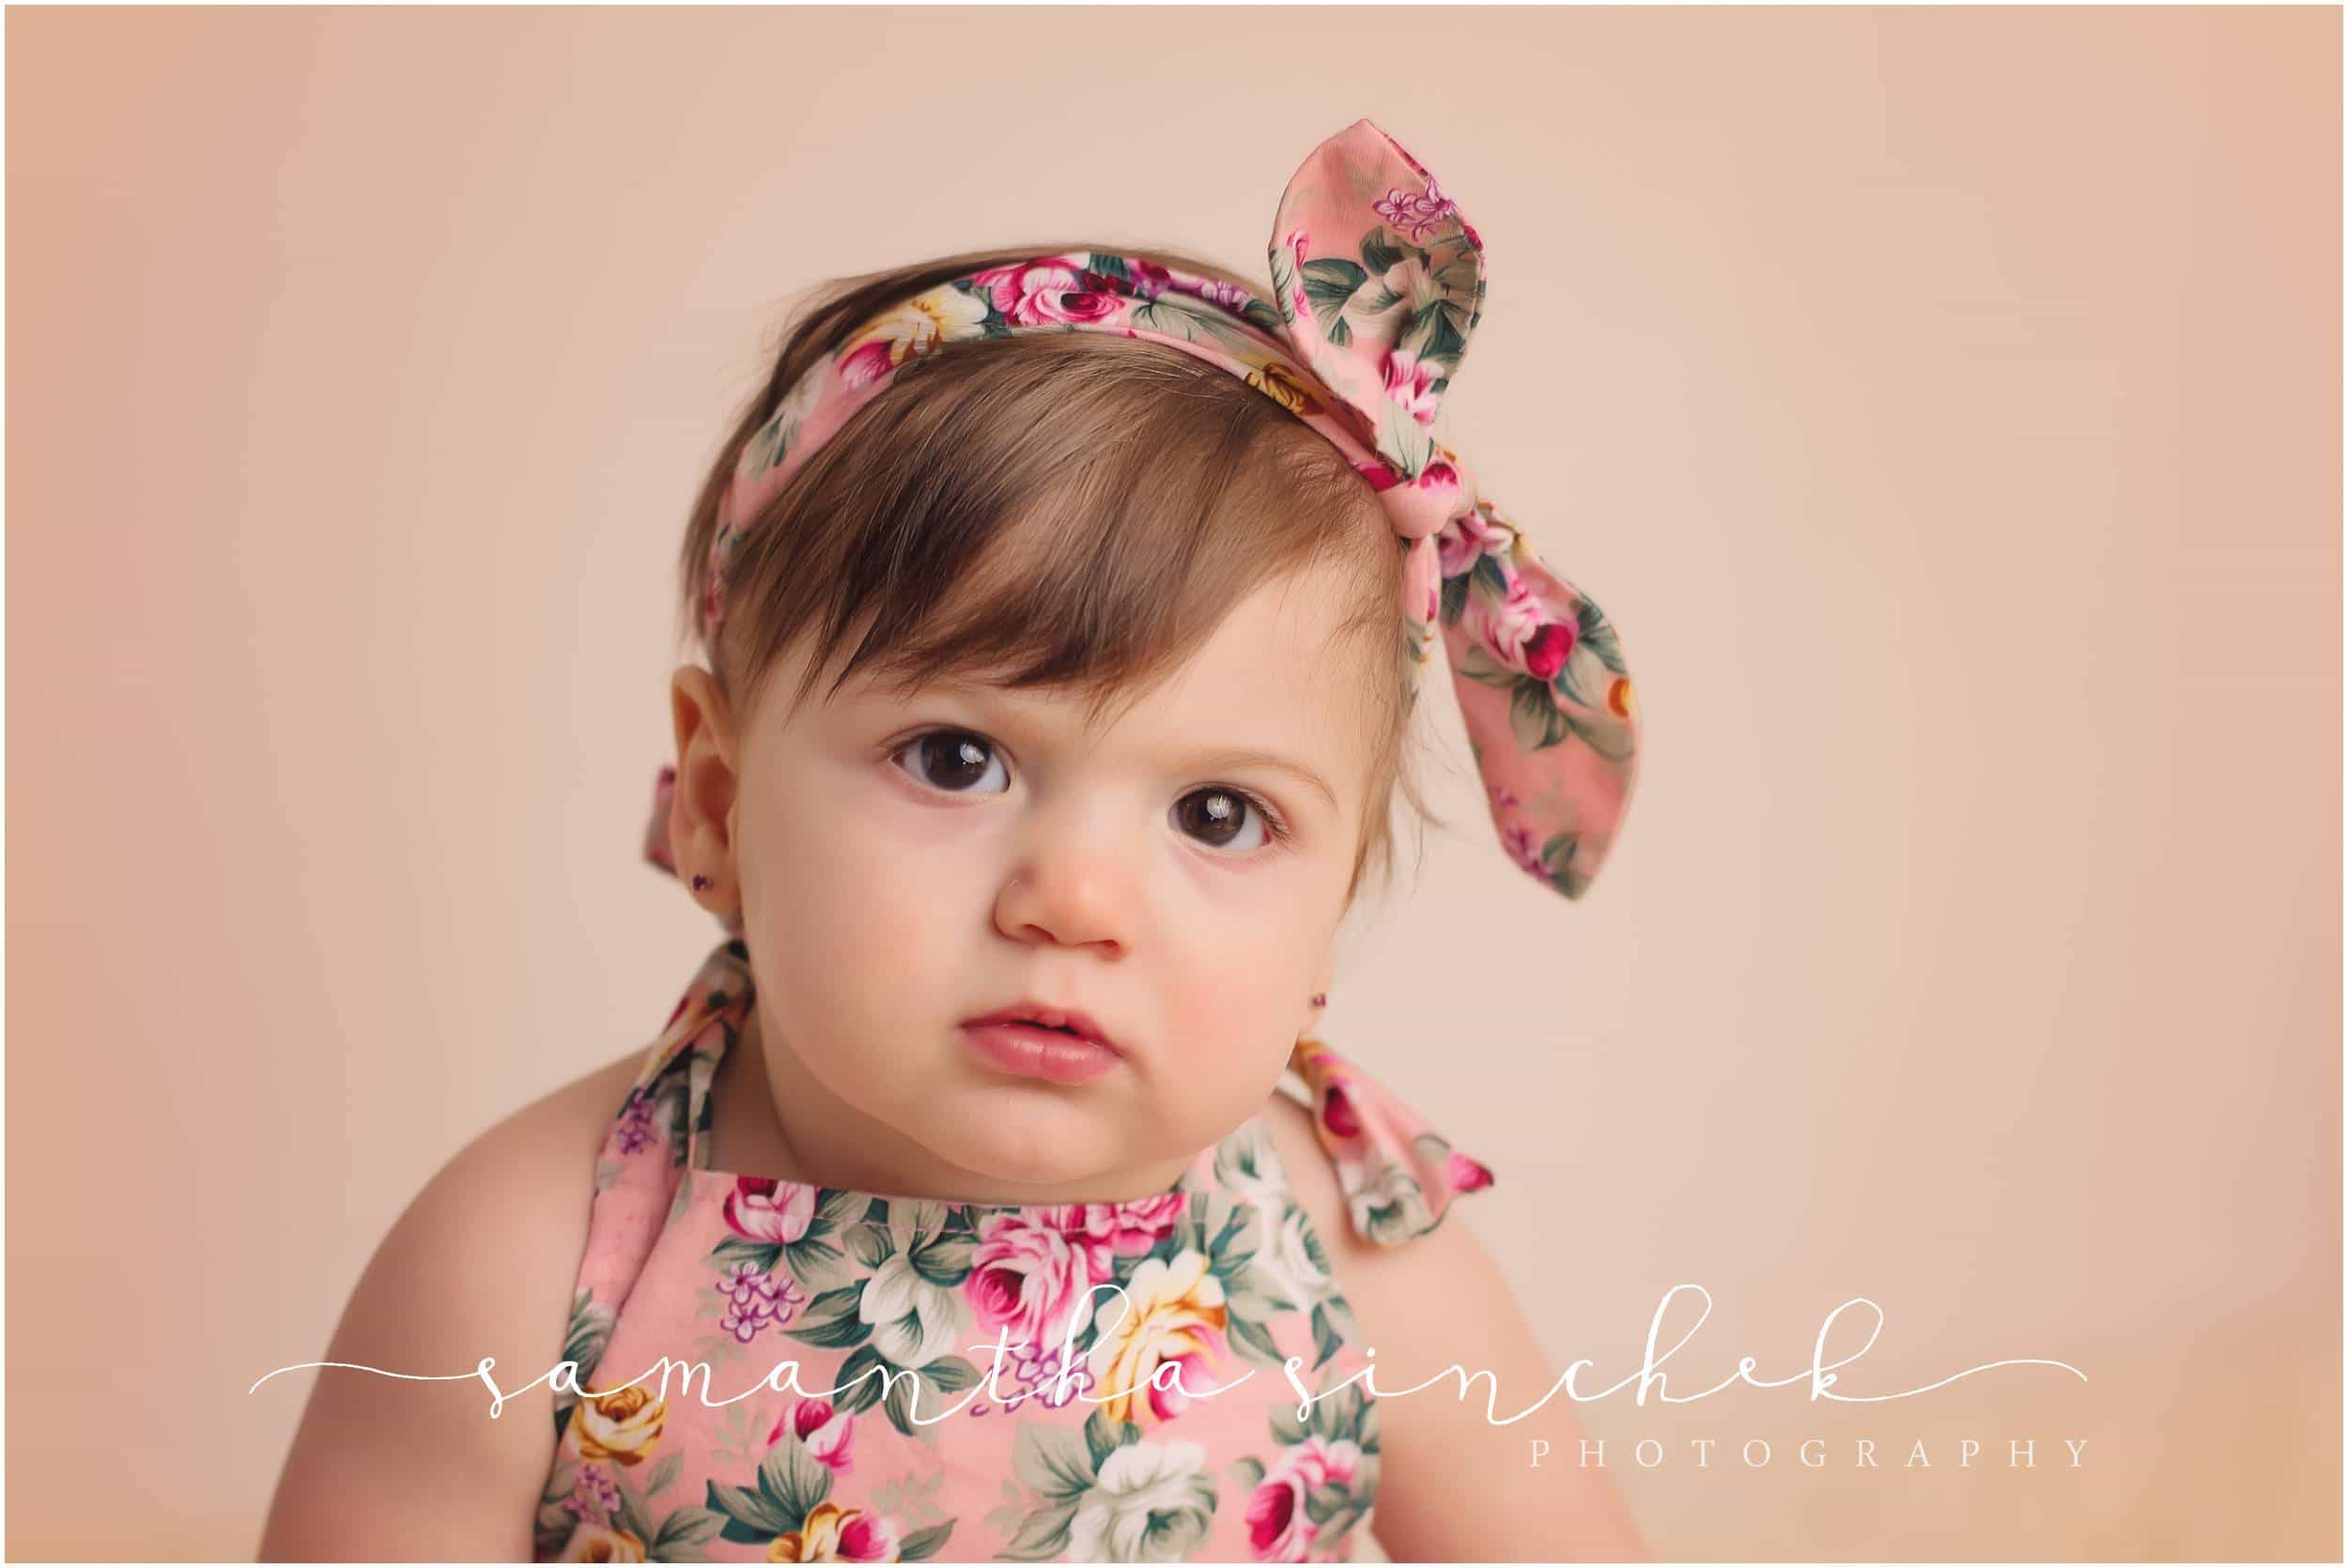 baby 9 month session at Samantha Sinchek photography in Cincinnati Ohio